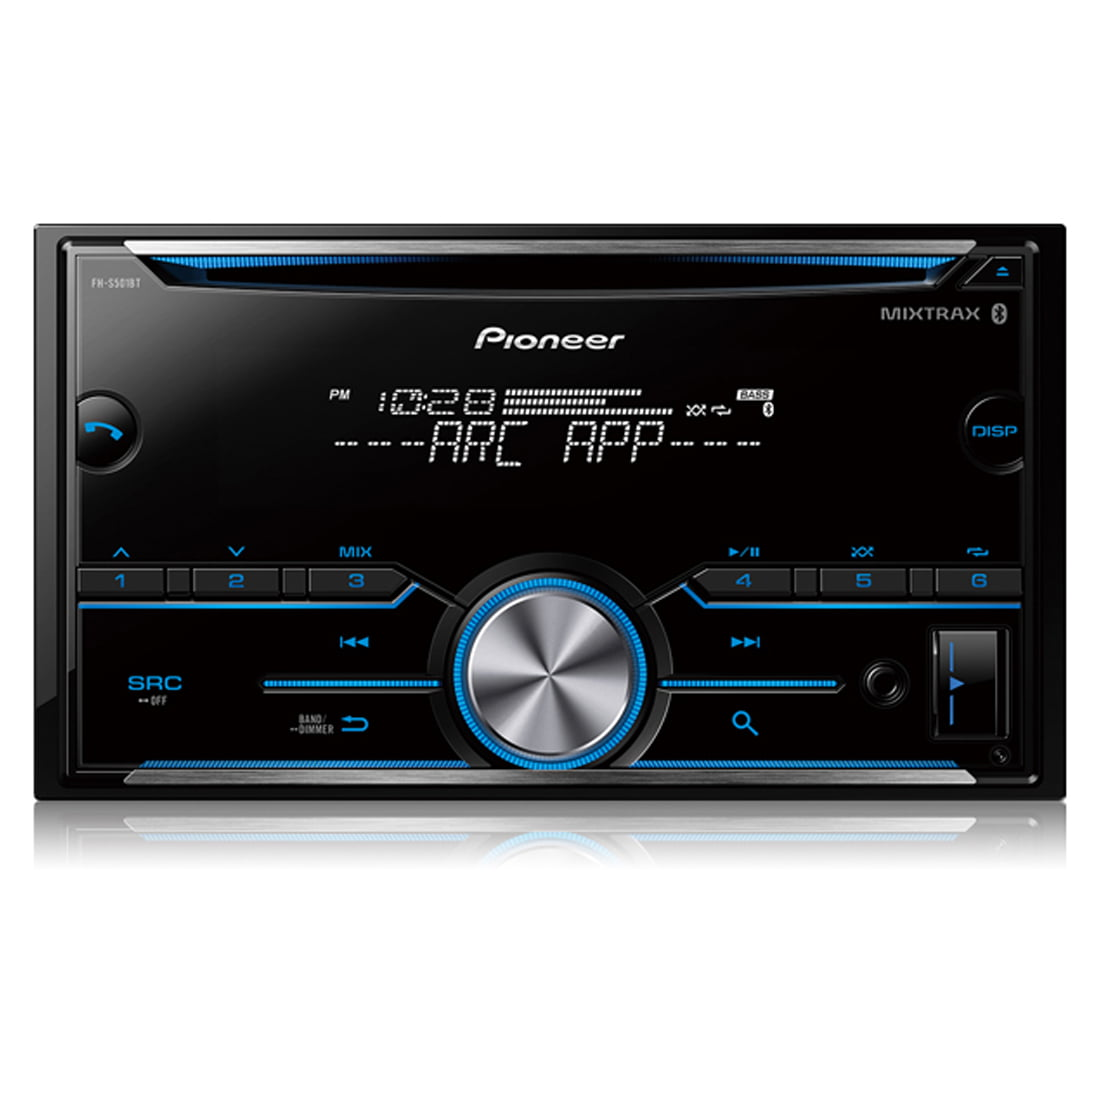 pioneer fh s501bt double din cd receiver with mixtrax